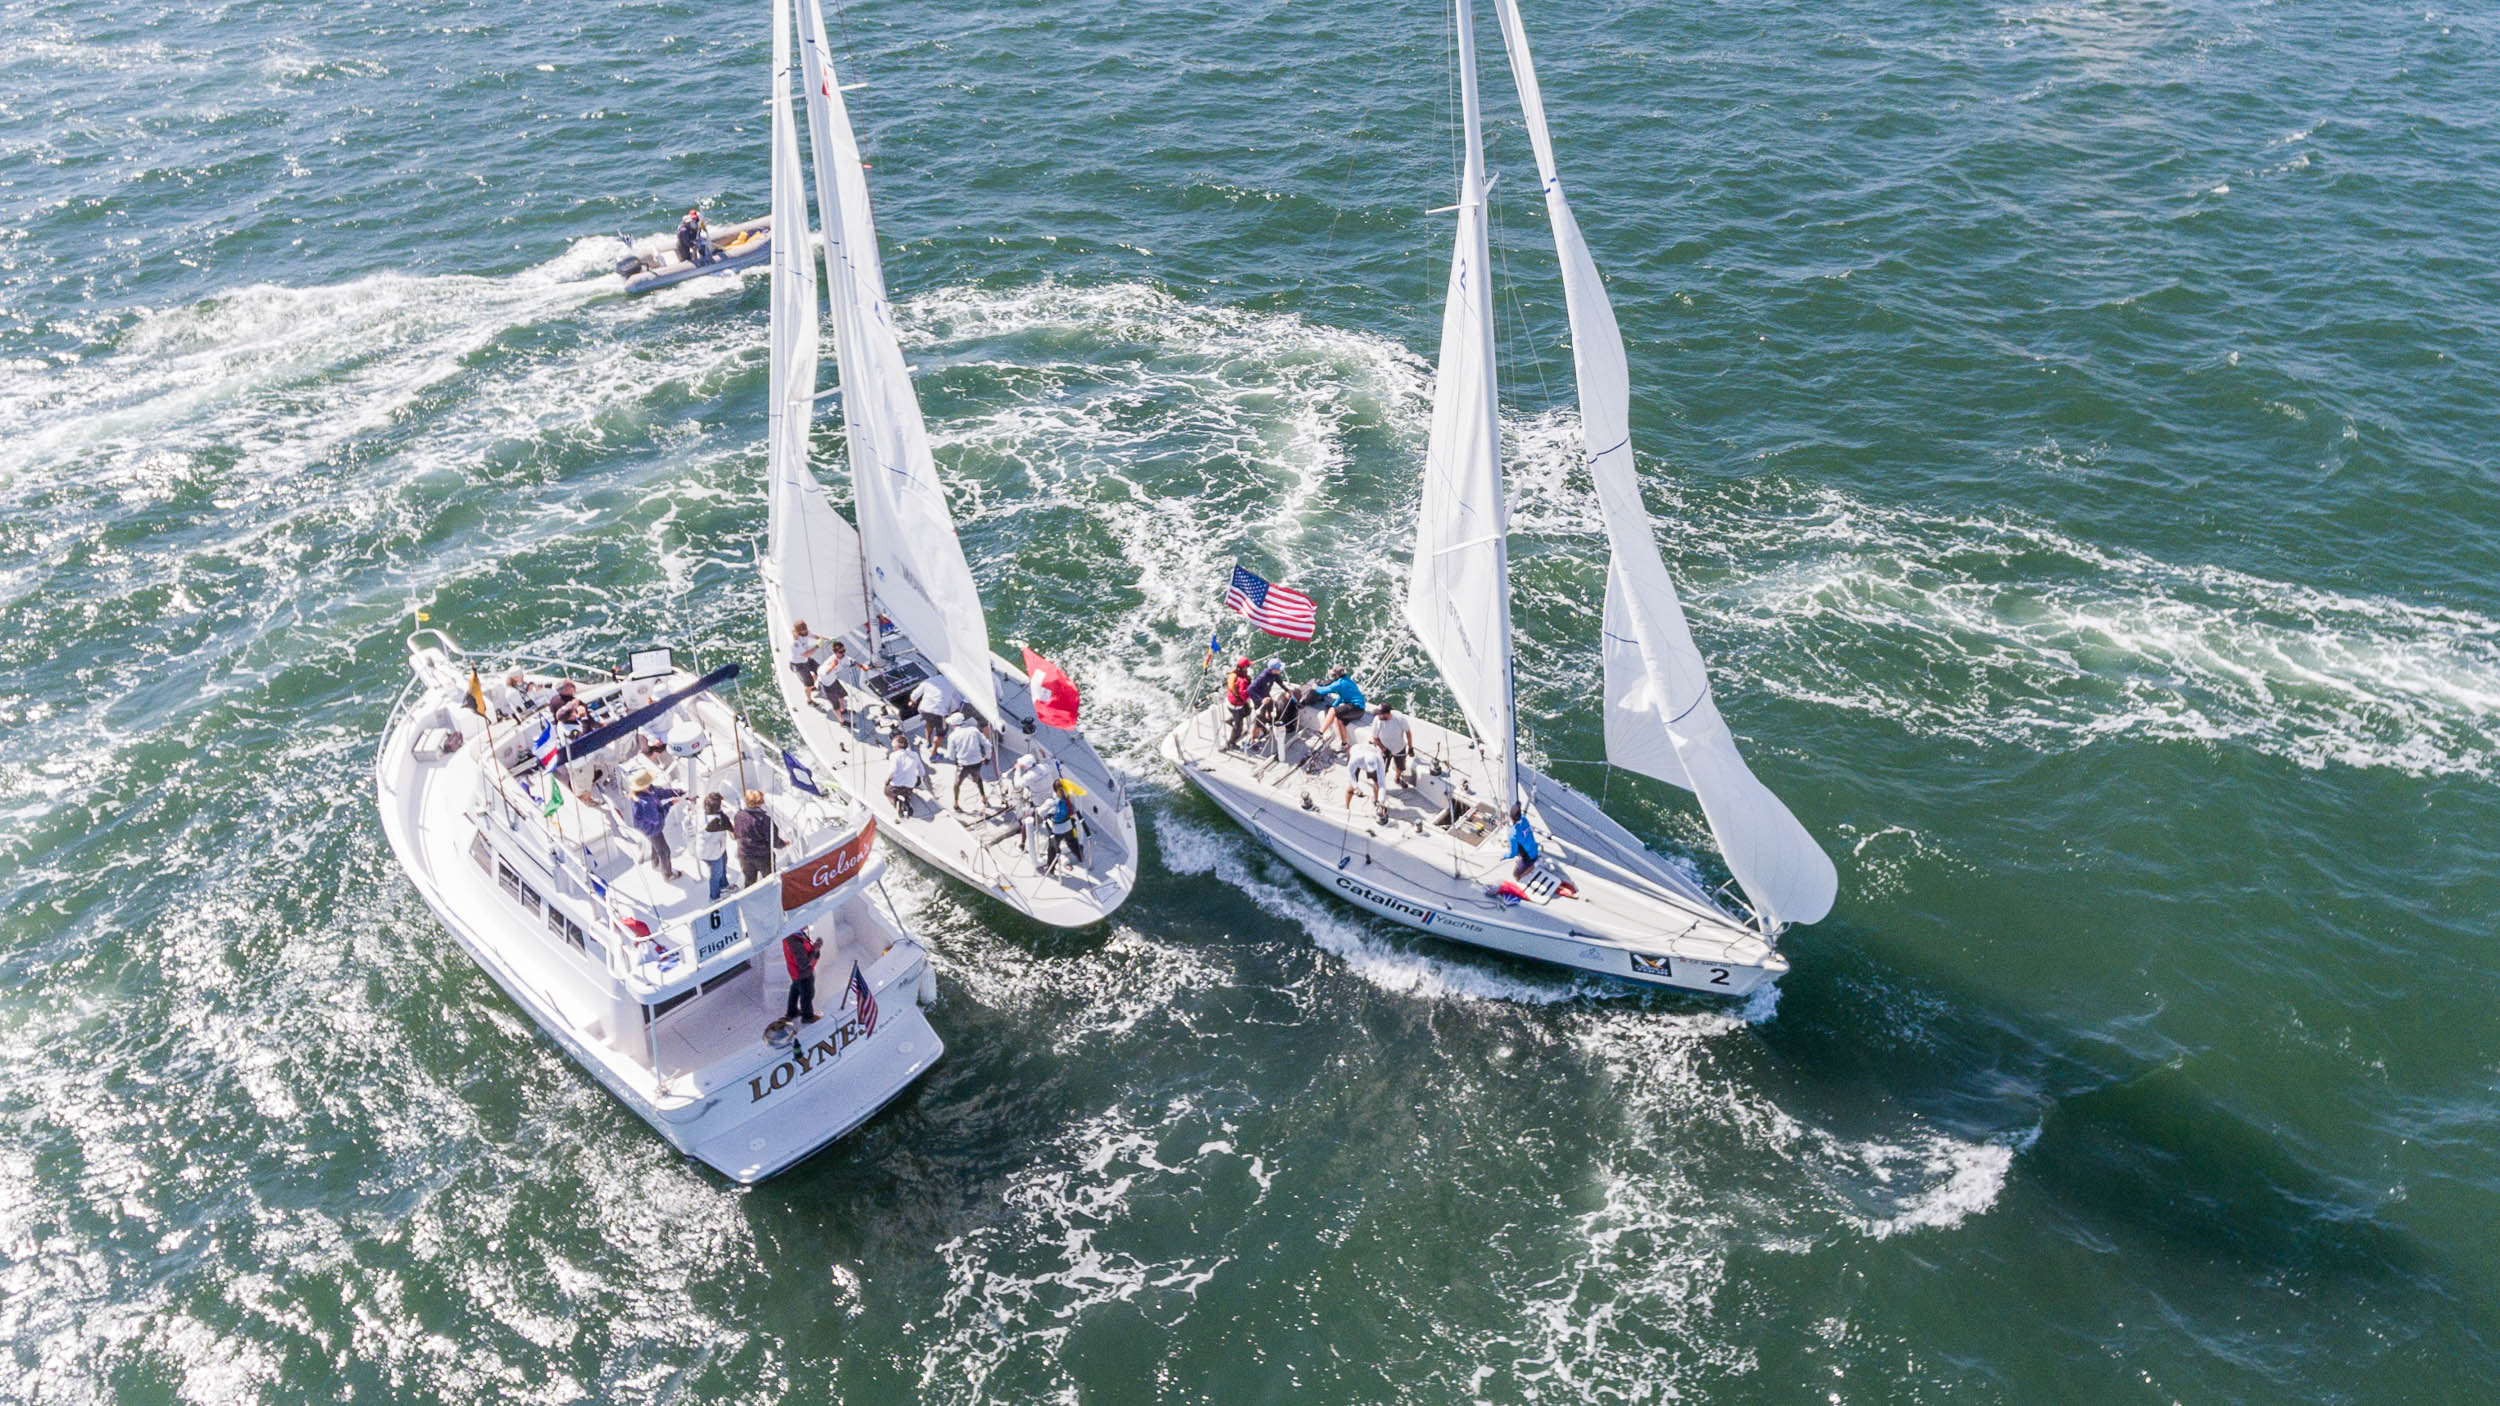 Racing at the Congressional Cup. Photo WMRT.